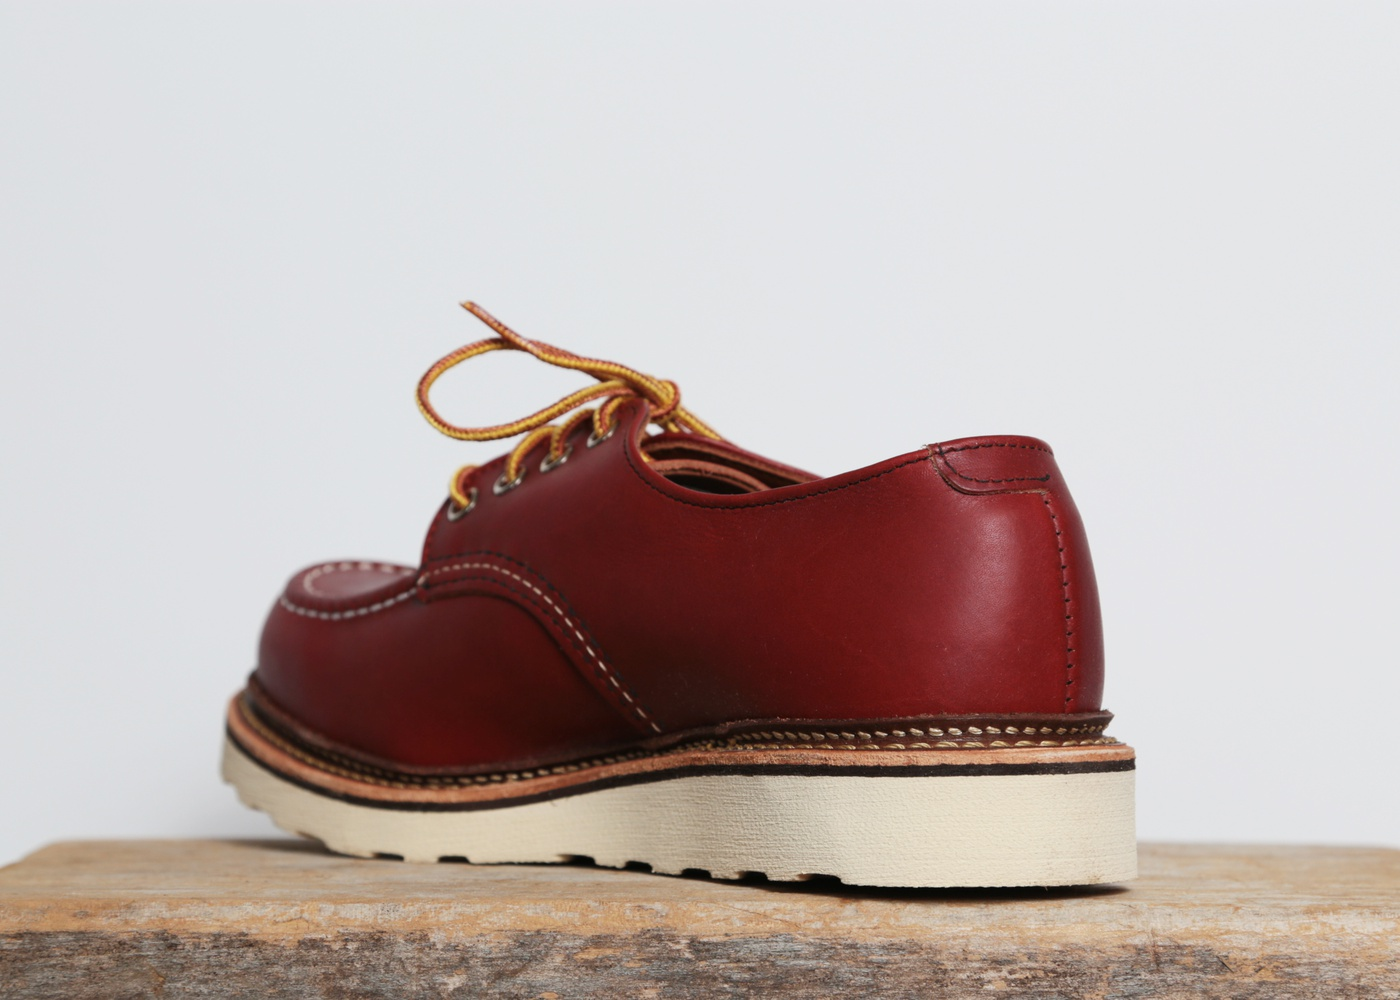 RED WING 8103-2 ORO RUSSET OXFORD SHOE nyc